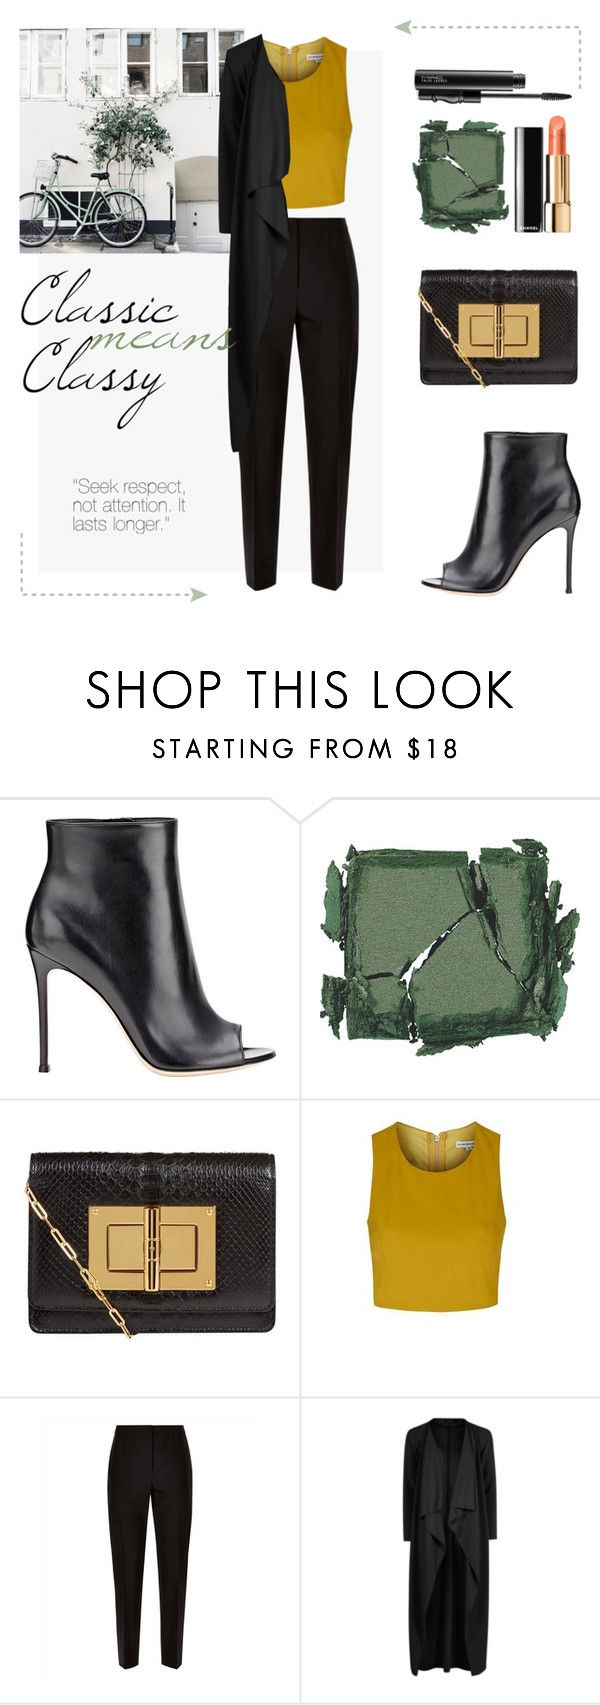 """""""Classic means classy"""" by taniadeseptembre ❤ liked on Polyvore featuring Gianvito Rossi, Surratt, Tom Ford, Topshop, Jaeger, Boohoo, MAC Cosmetics, classic and classy"""